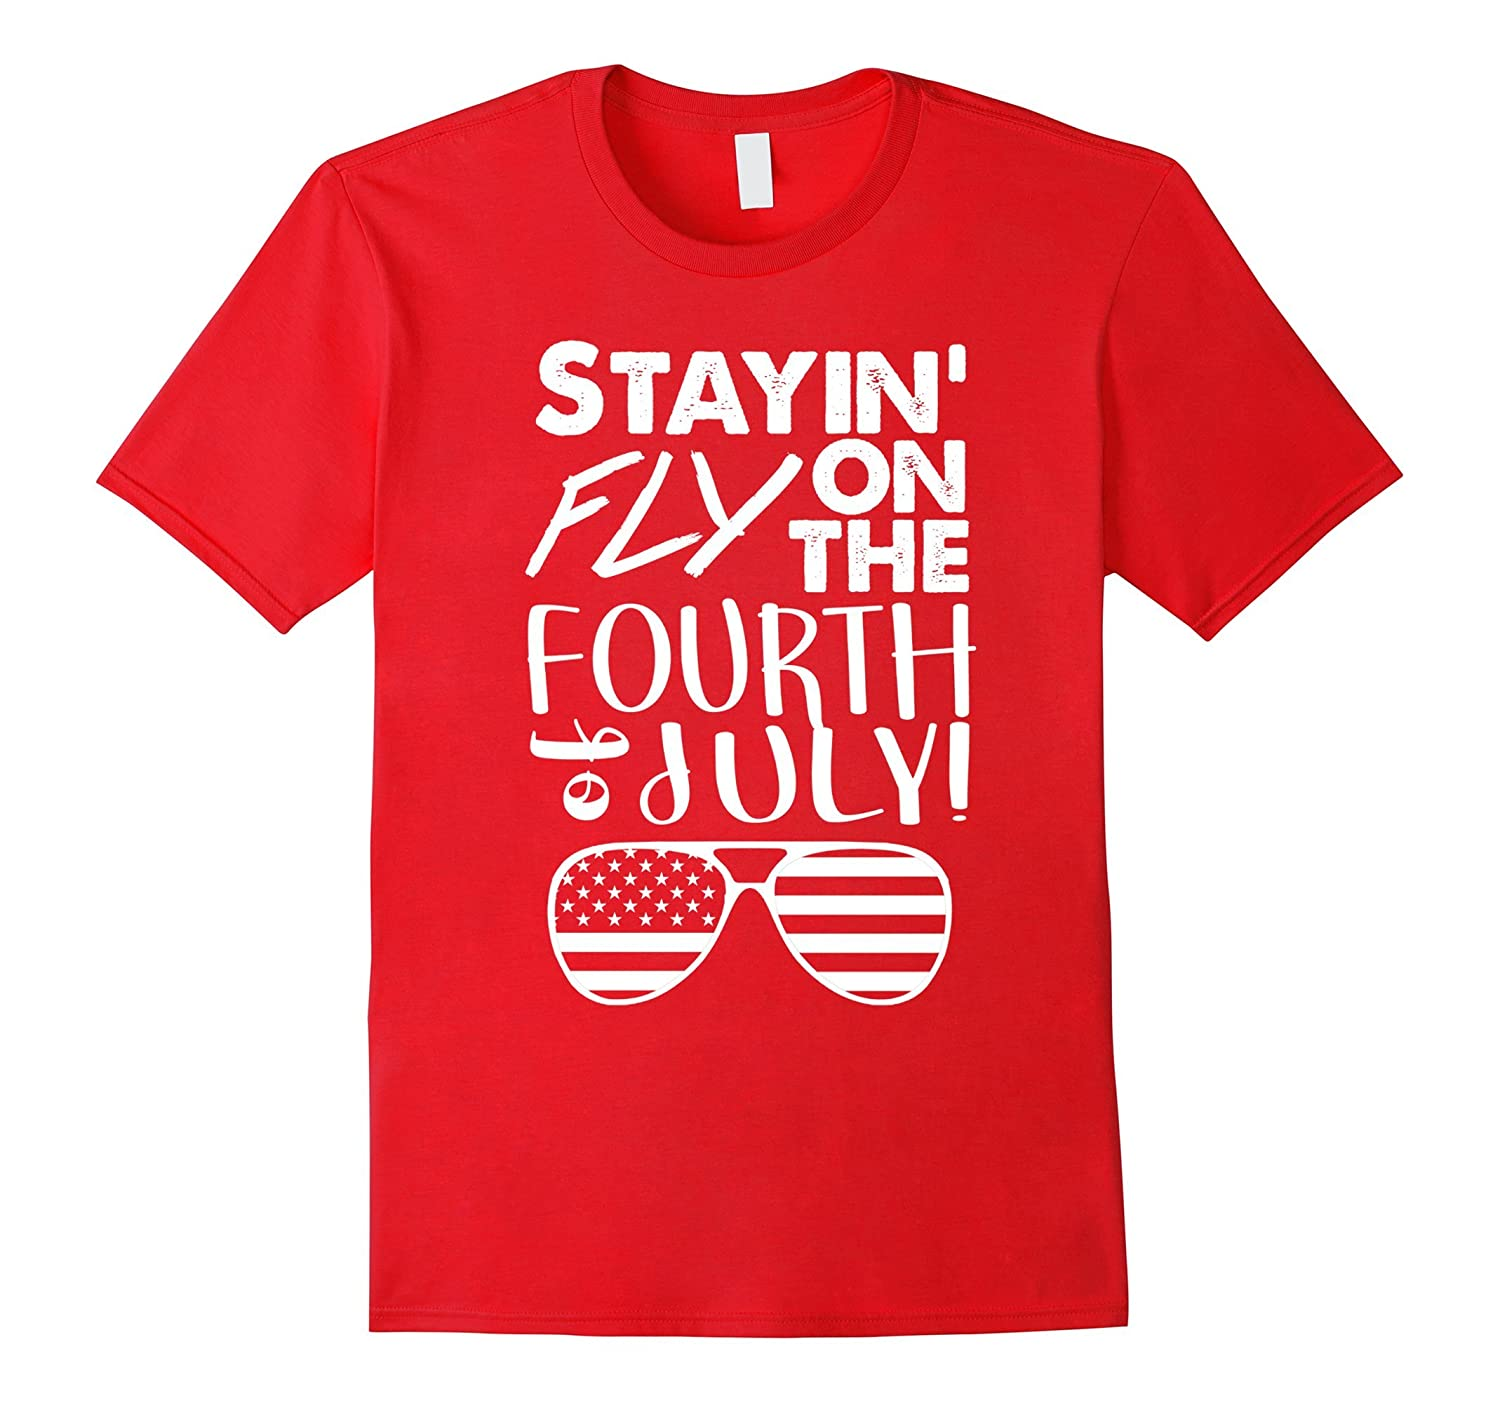 4th of July T-shirt  Stayin fly on the fourth of July shirt-TH